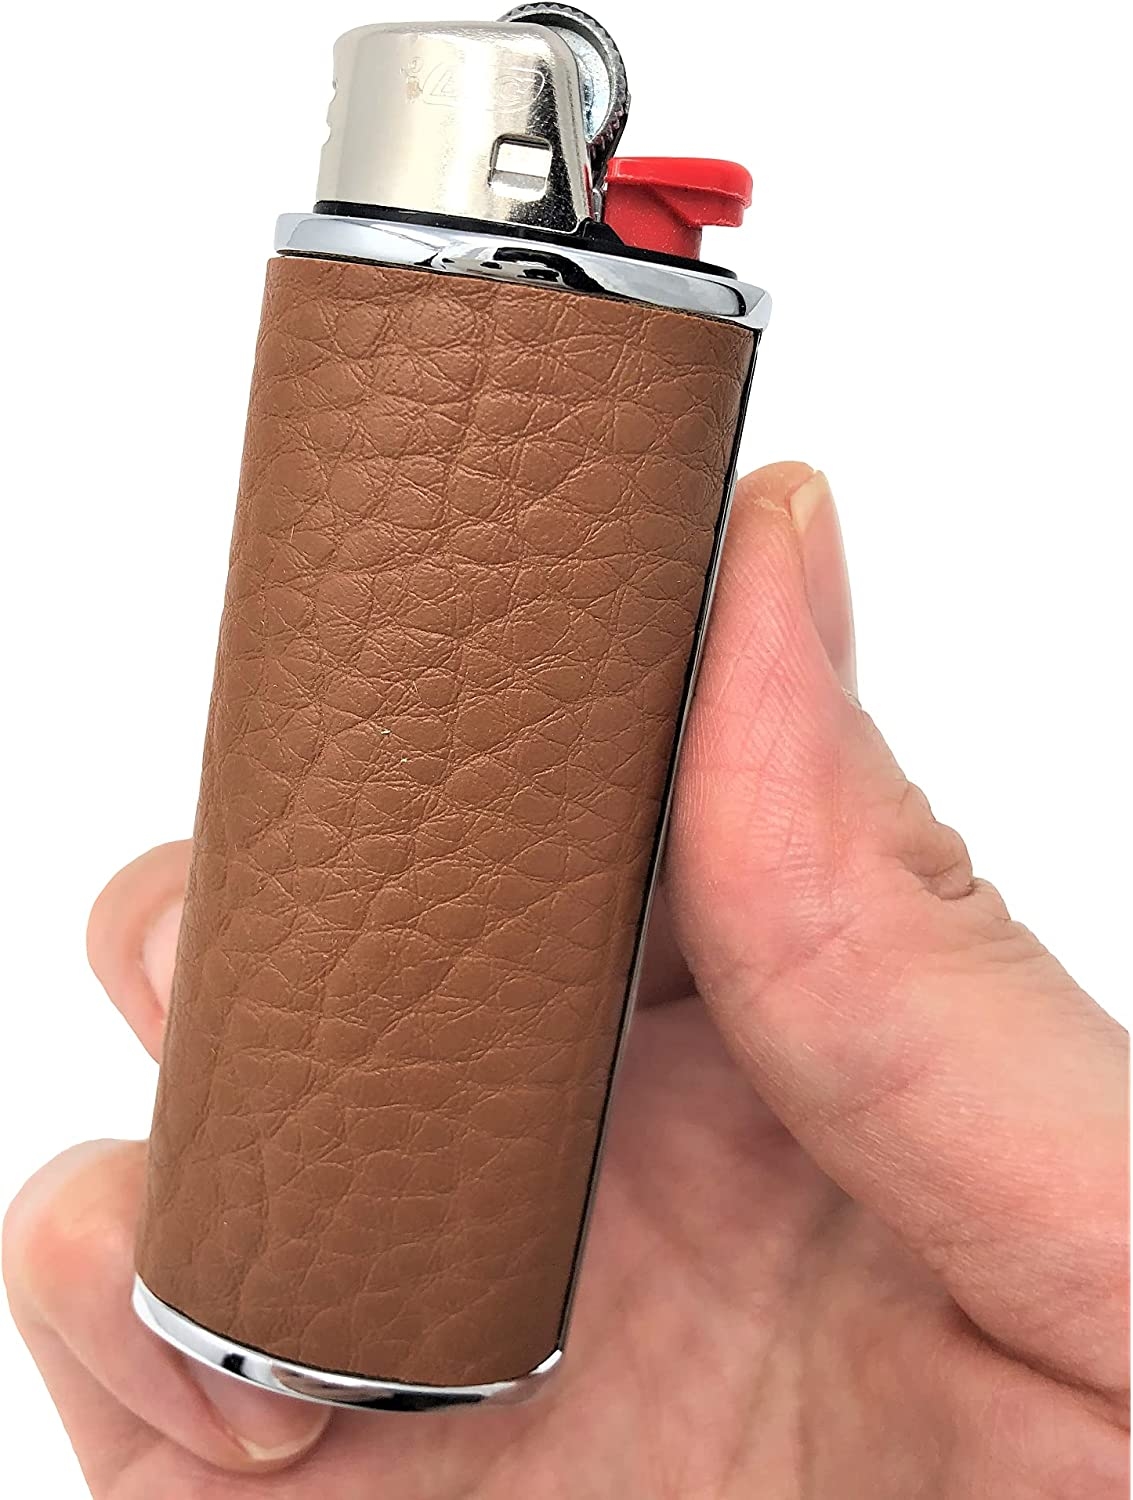 Metal Leather Lighter Case Cover free Holder BIC Fees free fits Full Standard S